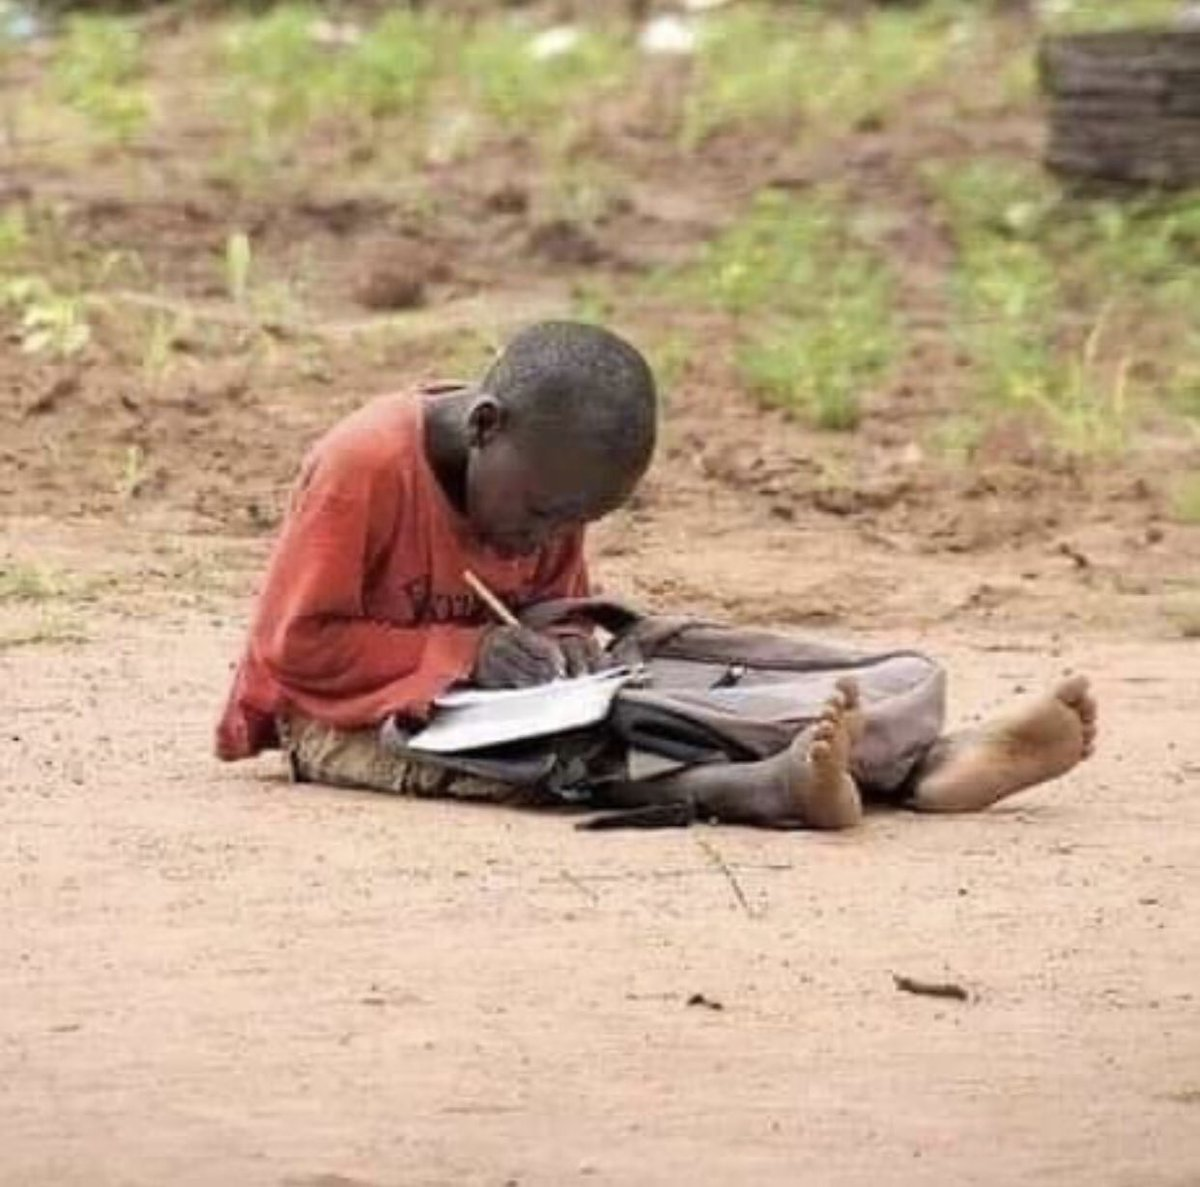 No matter what, keep trying, if you give up then, all of your hard work can go for nothing.  Remember, Every person's personality, values and experience are different. #PictureOfTheDay pic.twitter.com/giyWR3puhe